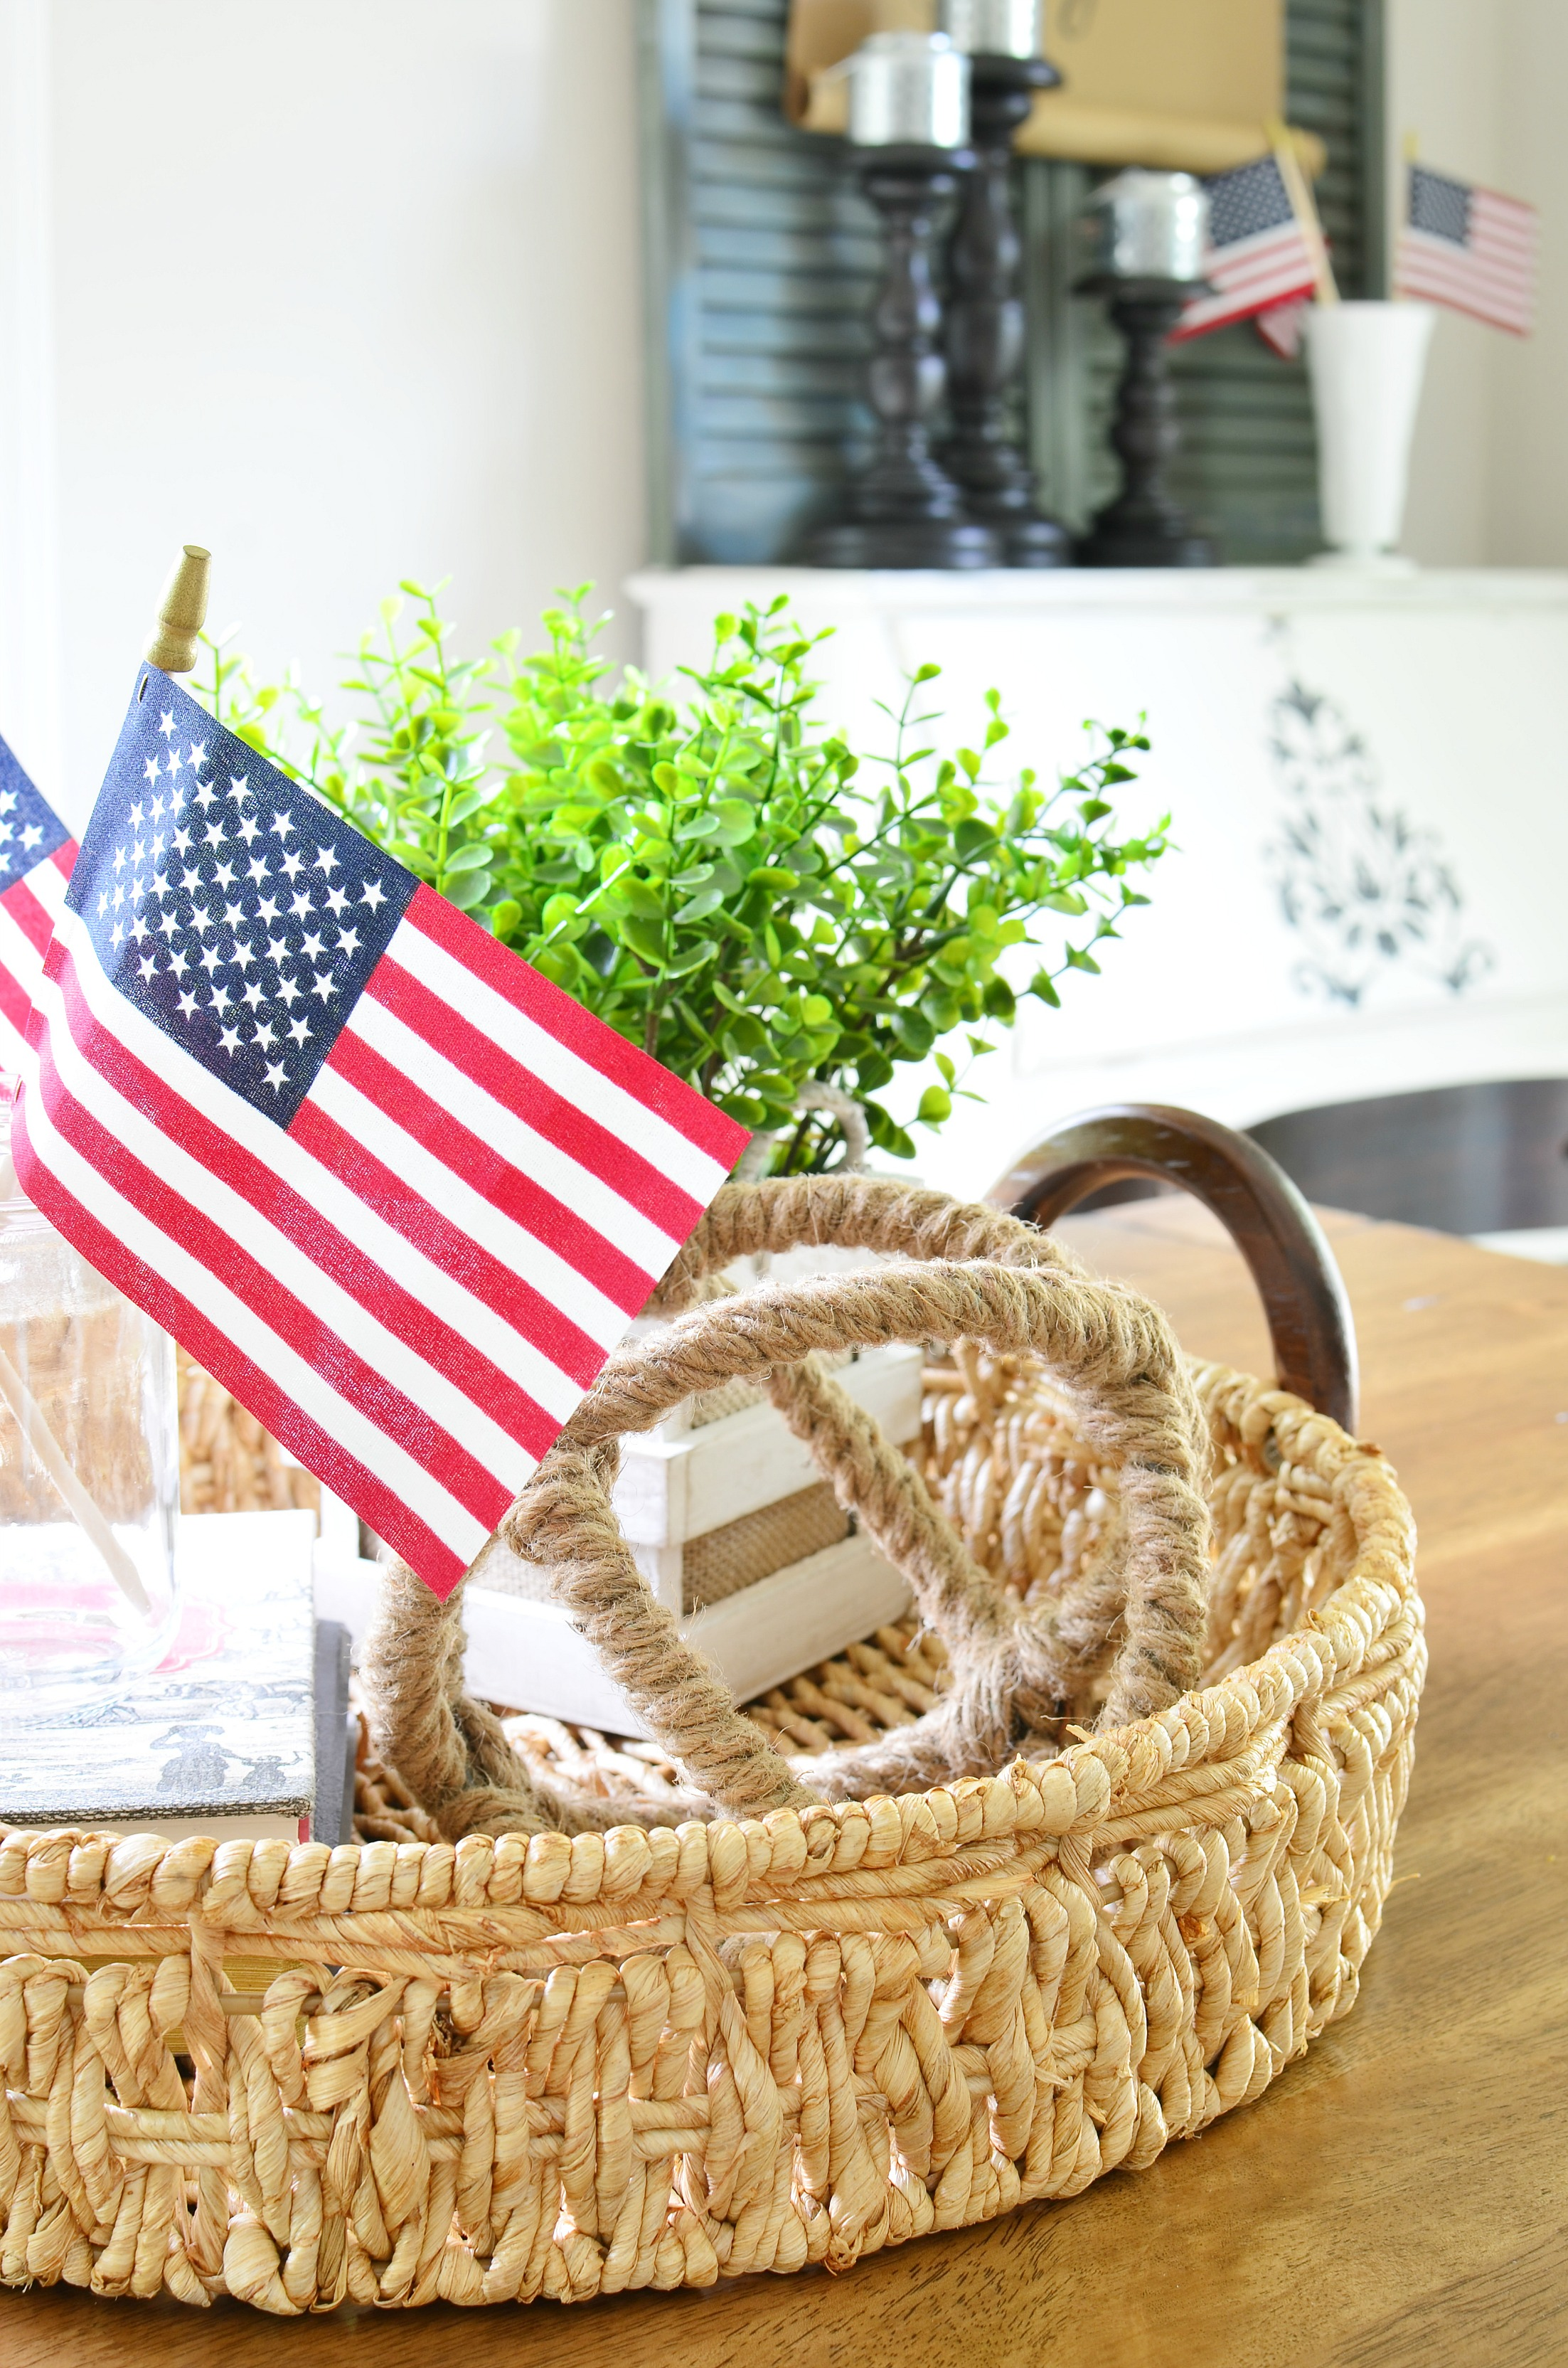 Five simple ways to add patriotic decor to your home for Patriotic home decorations